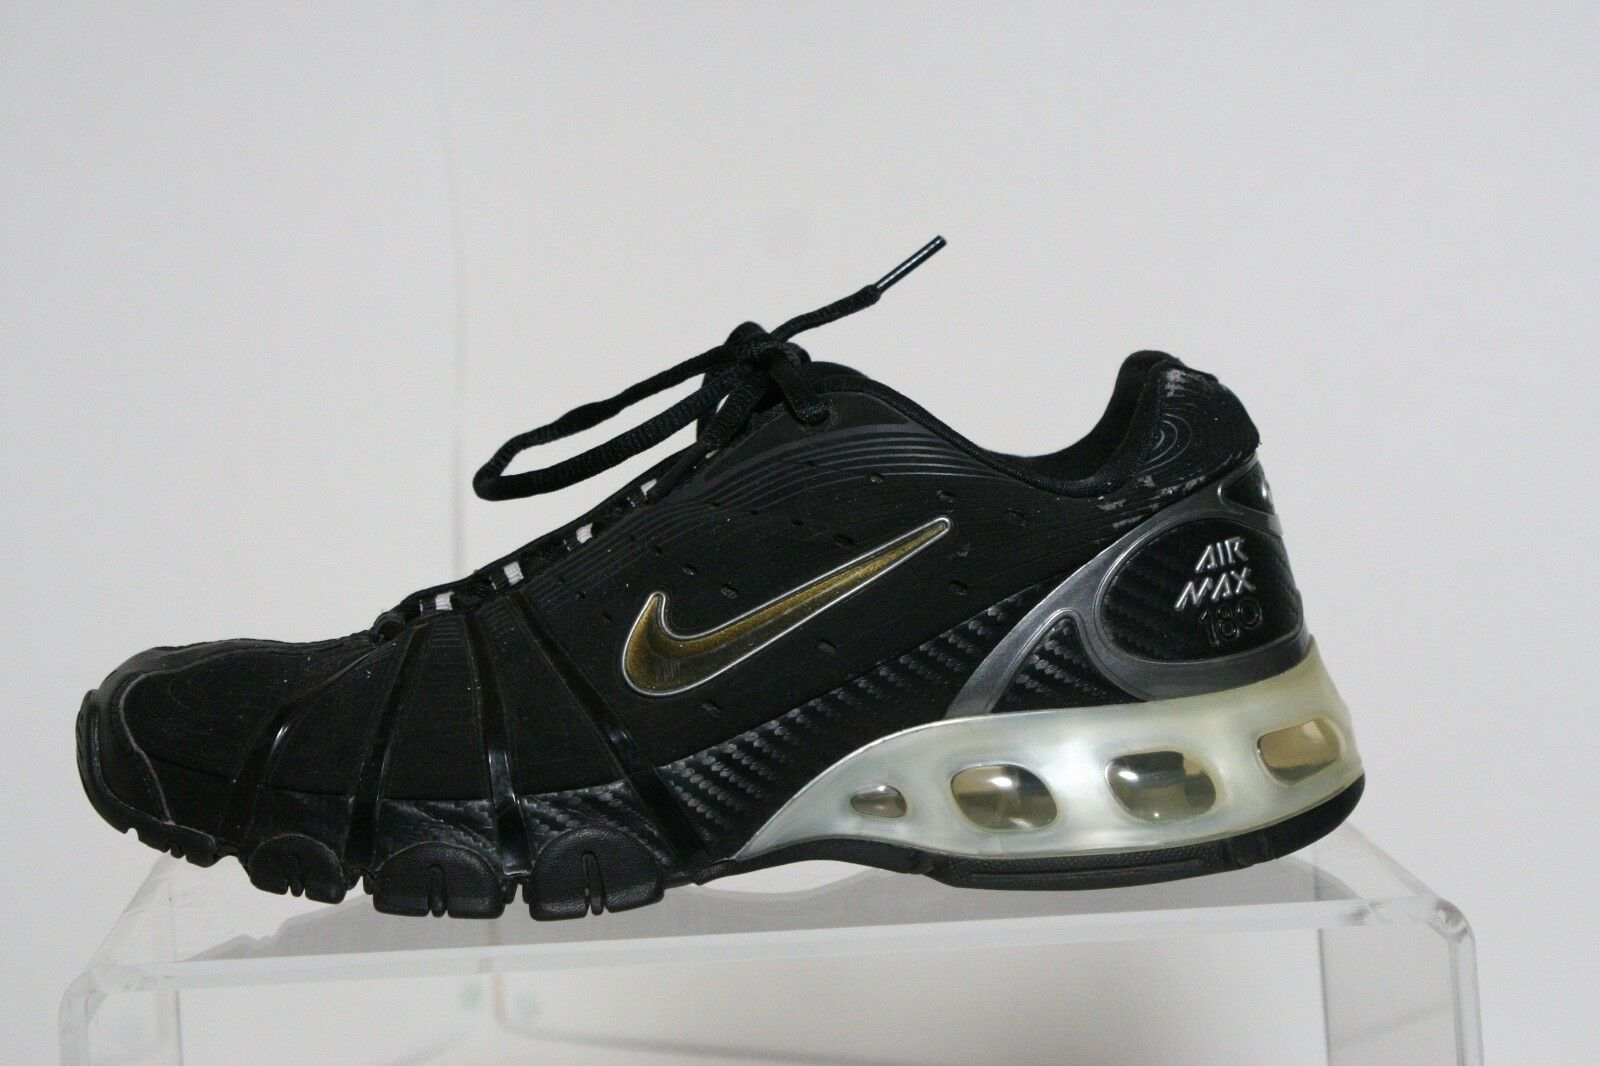 Nike air max. 180 '06 läuft sneaker athletic multi multi multi - schwarze 8,5 hippen retro deb389